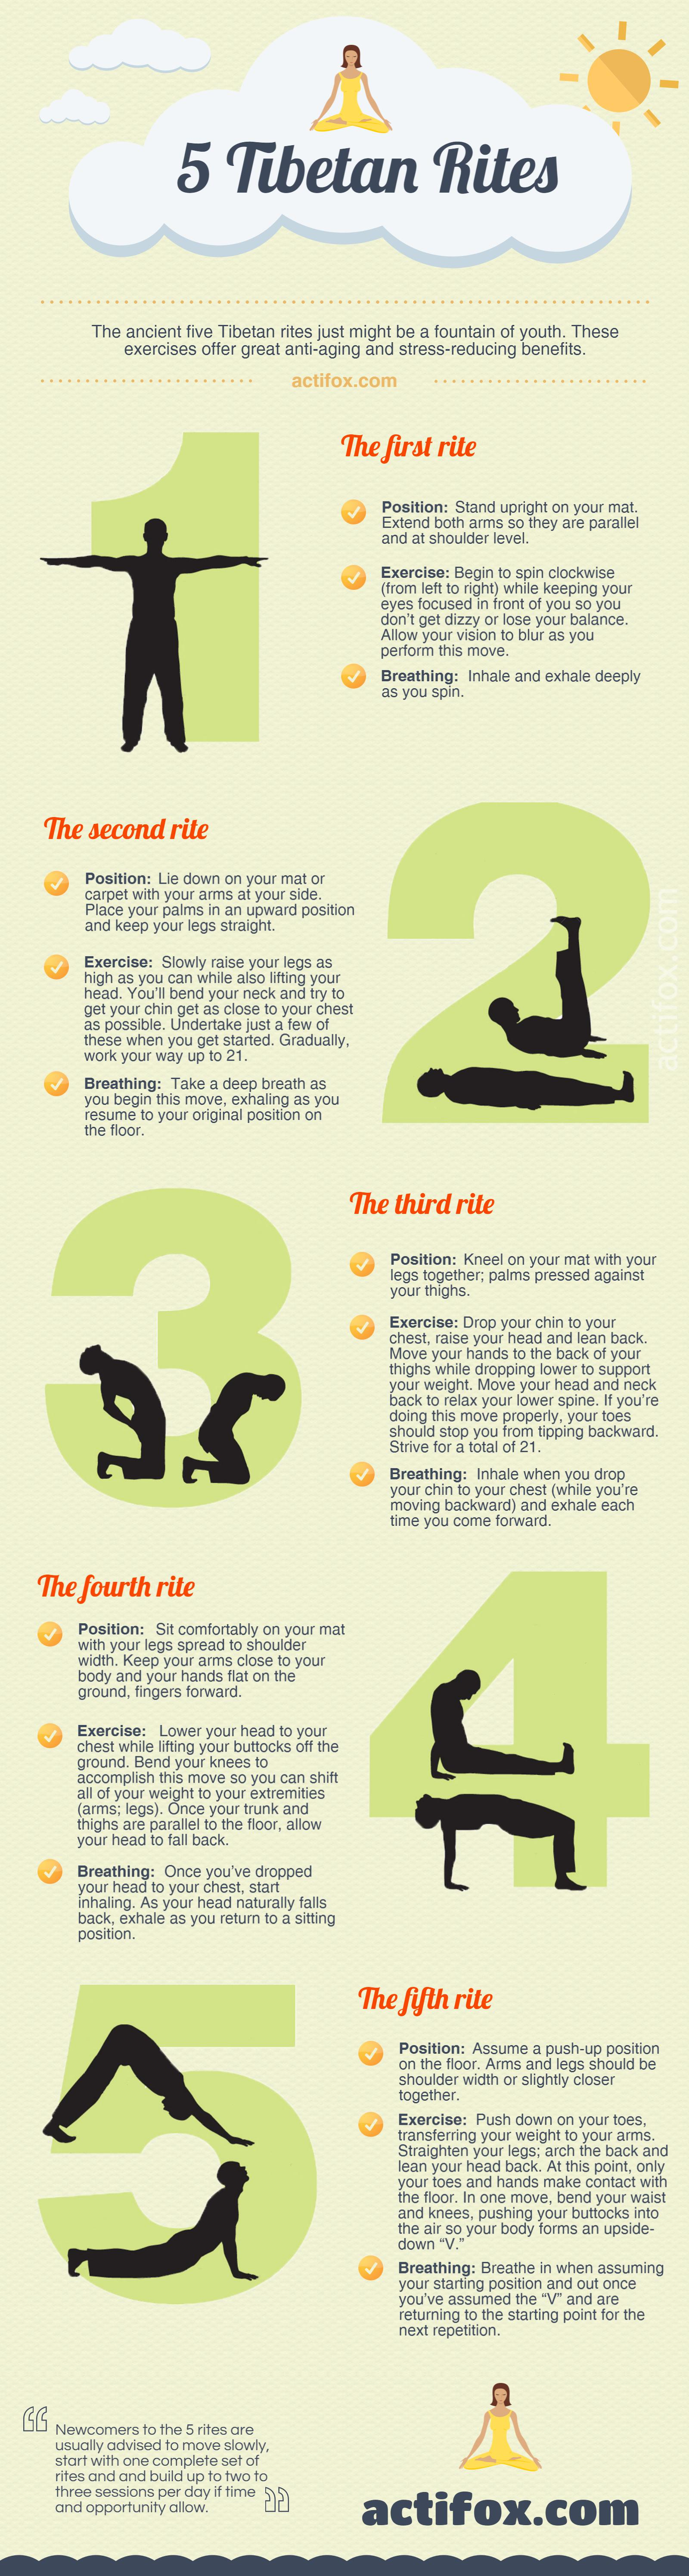 yoga for healthy aging a guide to lifelong well being